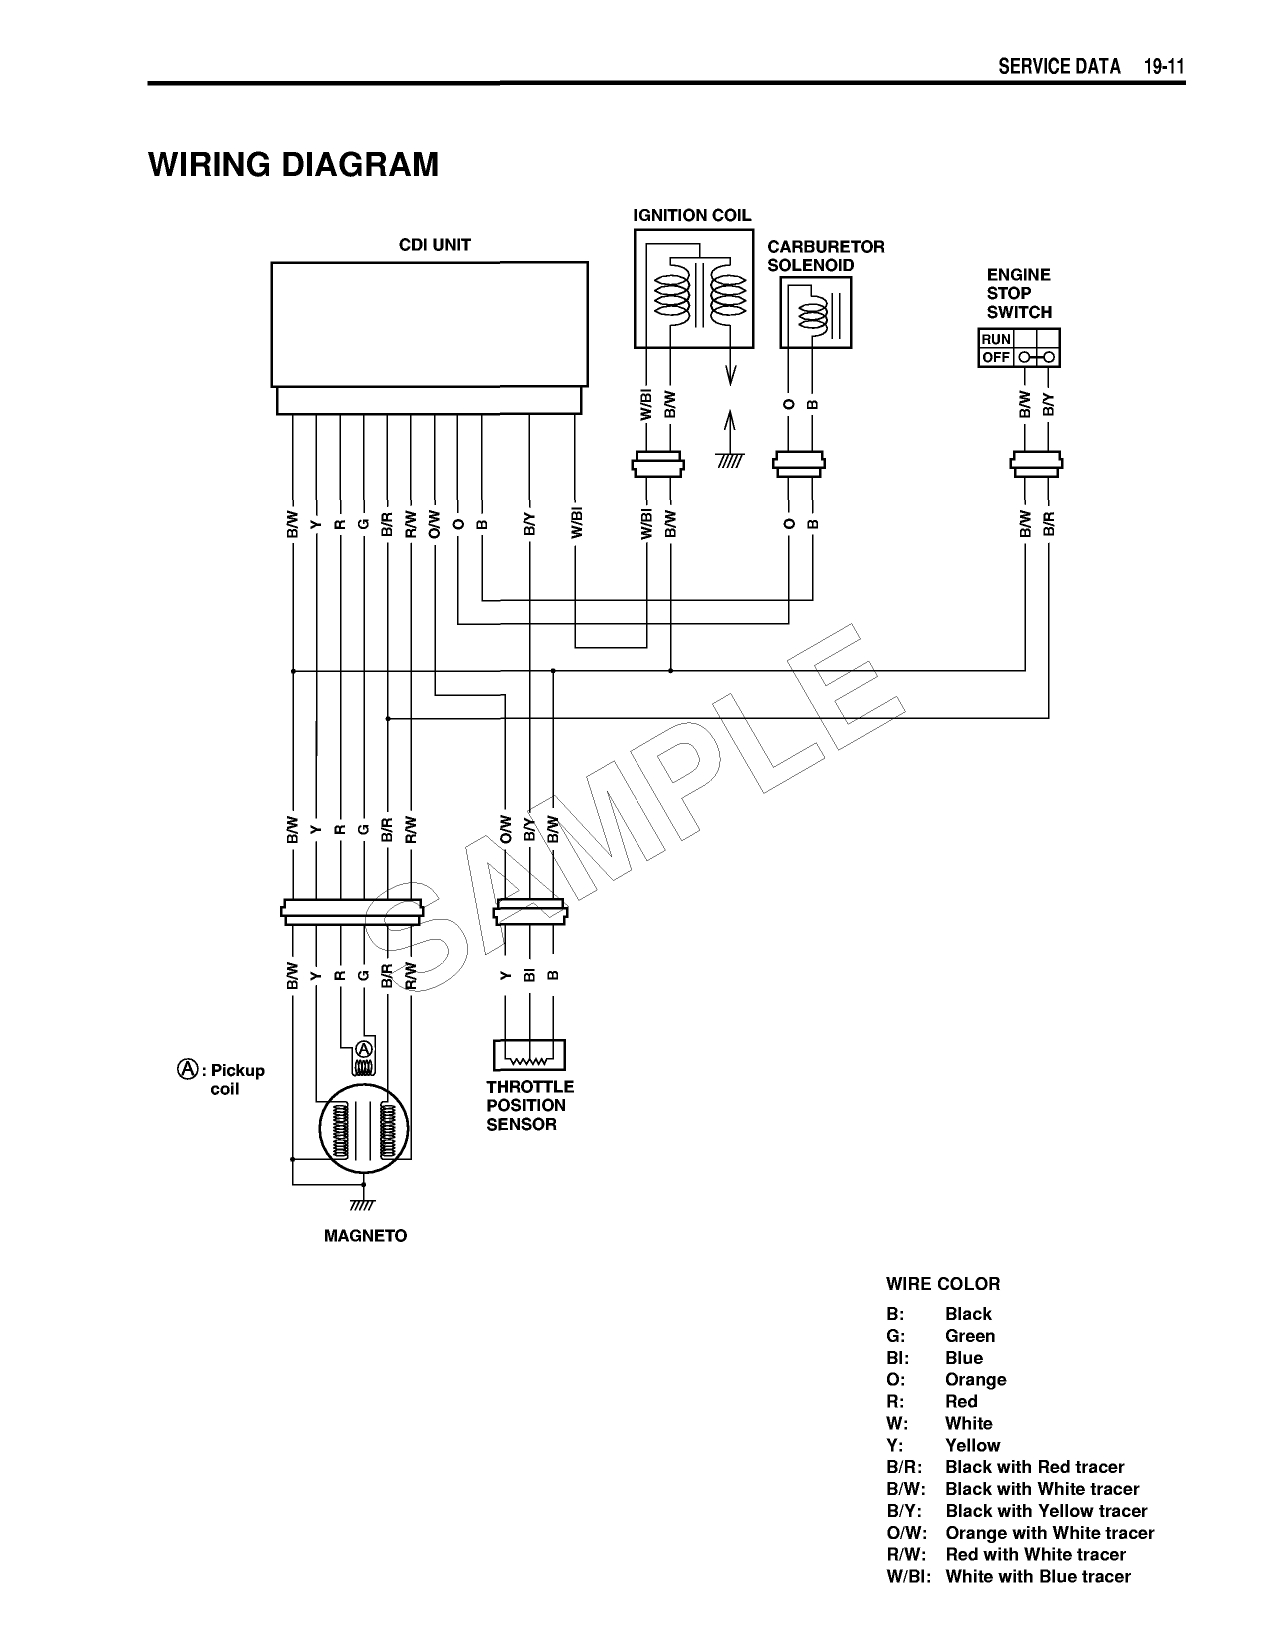 Ital Jet Wiring 1992 Gl1500 Diagram Suzuki Rm 250 Ignition Diagram285k